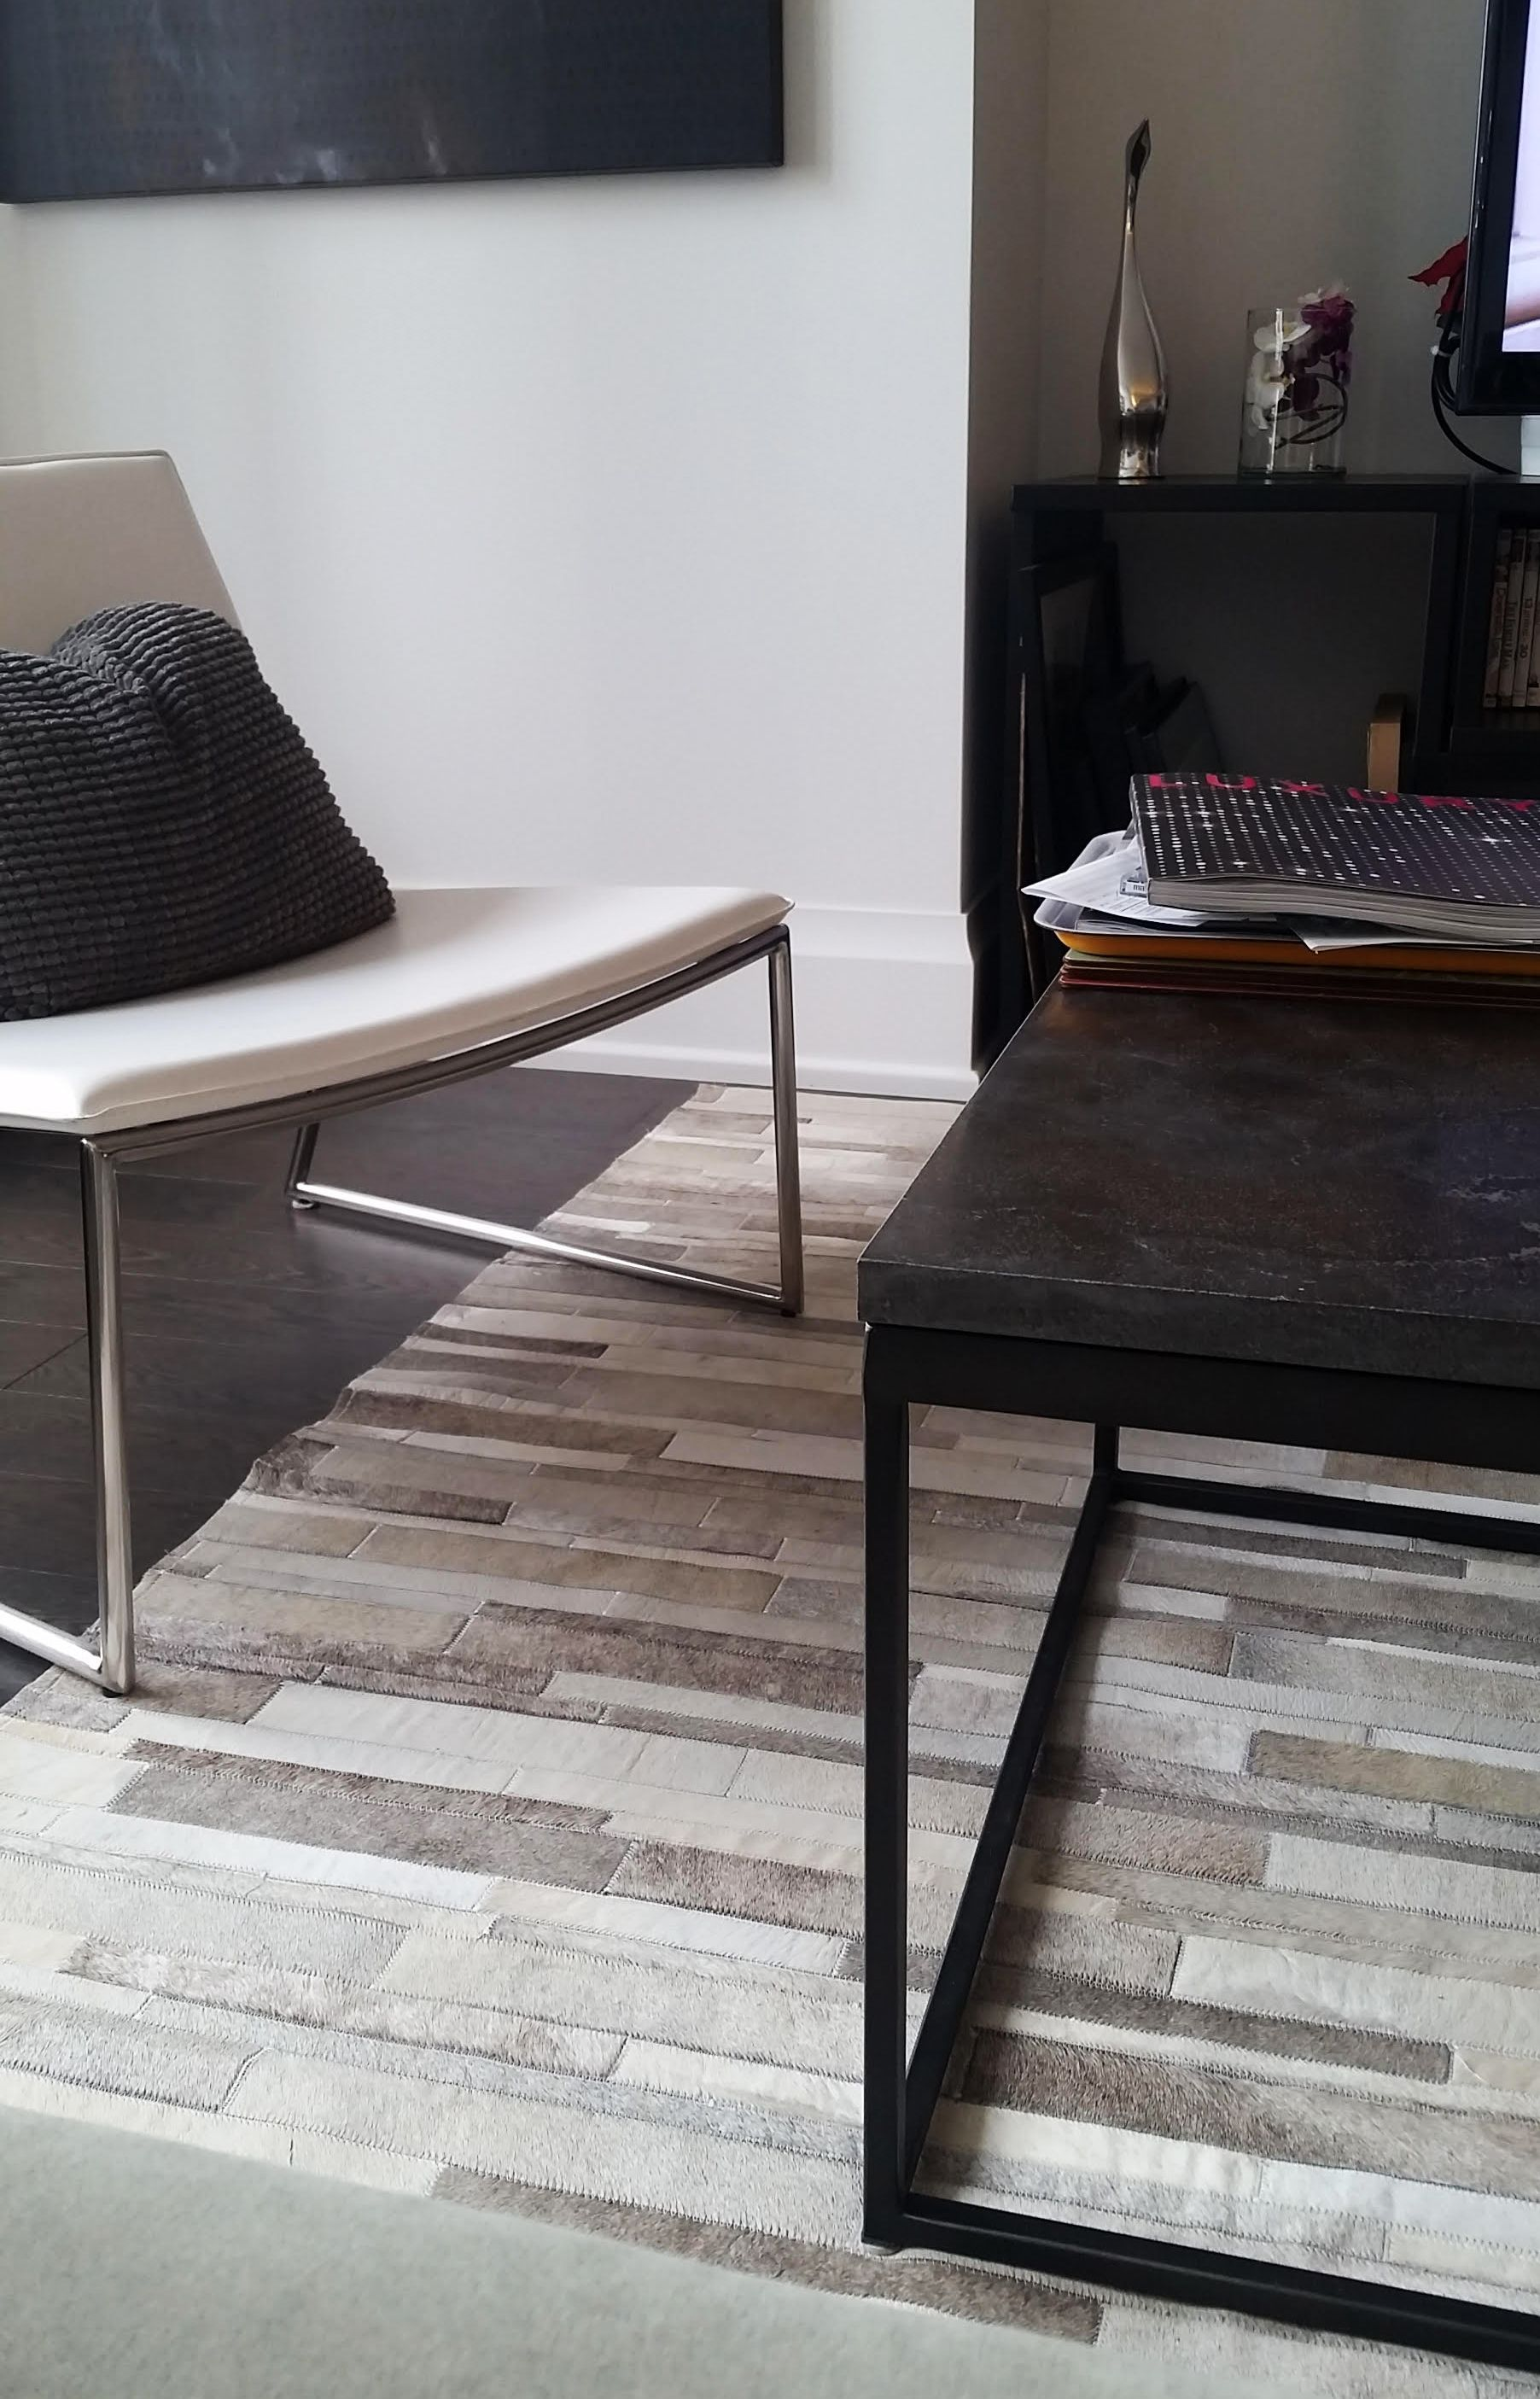 Super Corner In Jane S Home A White And Gray Patchwork Cowhide Rug Limits The Room And Lightens Up The W Patchwork Cowhide Rug Patchwork Cowhide Cow Hide Rug